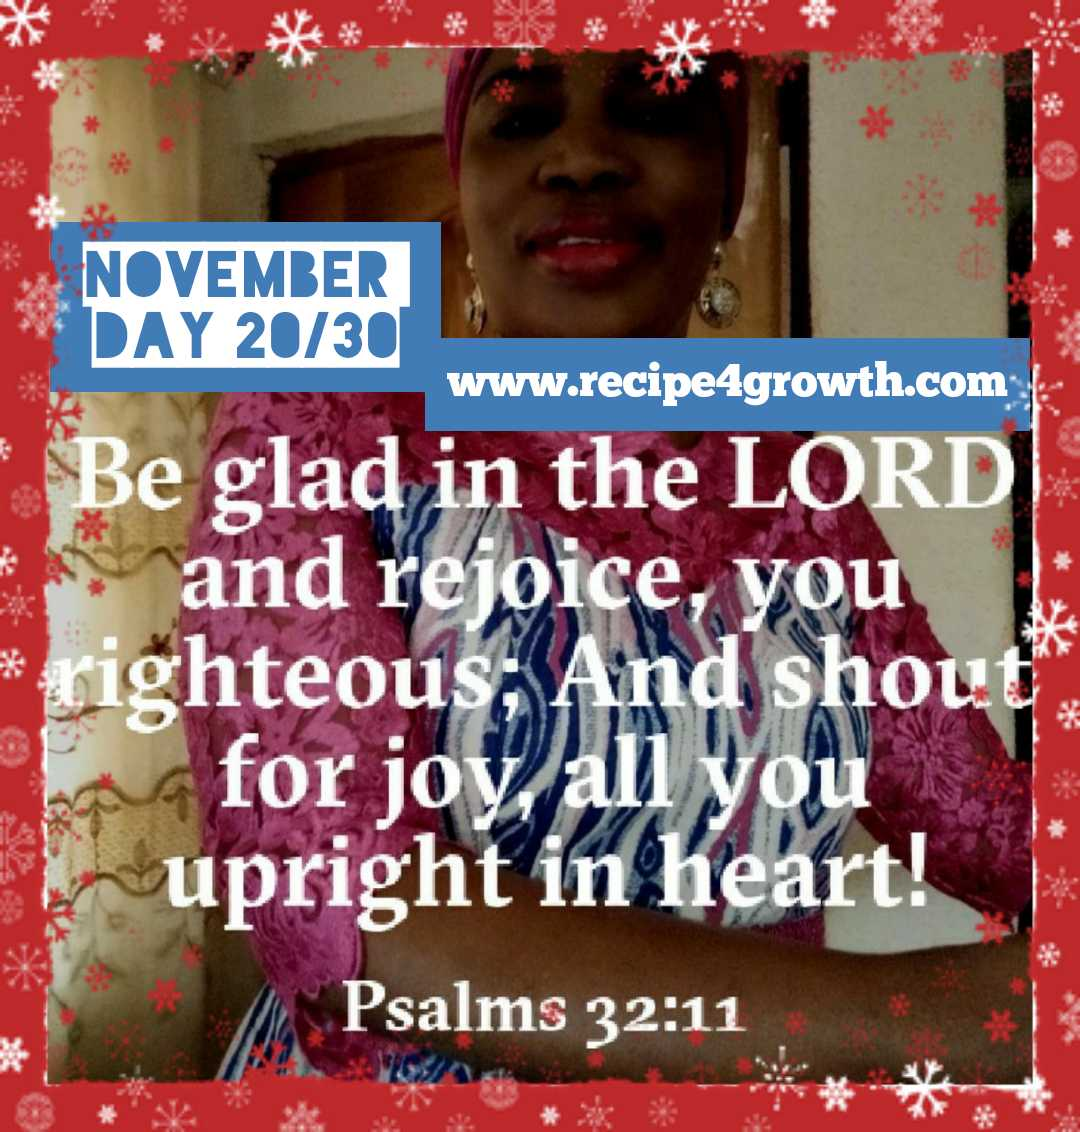 BE GLAD IN THE LORD AND REJOICE